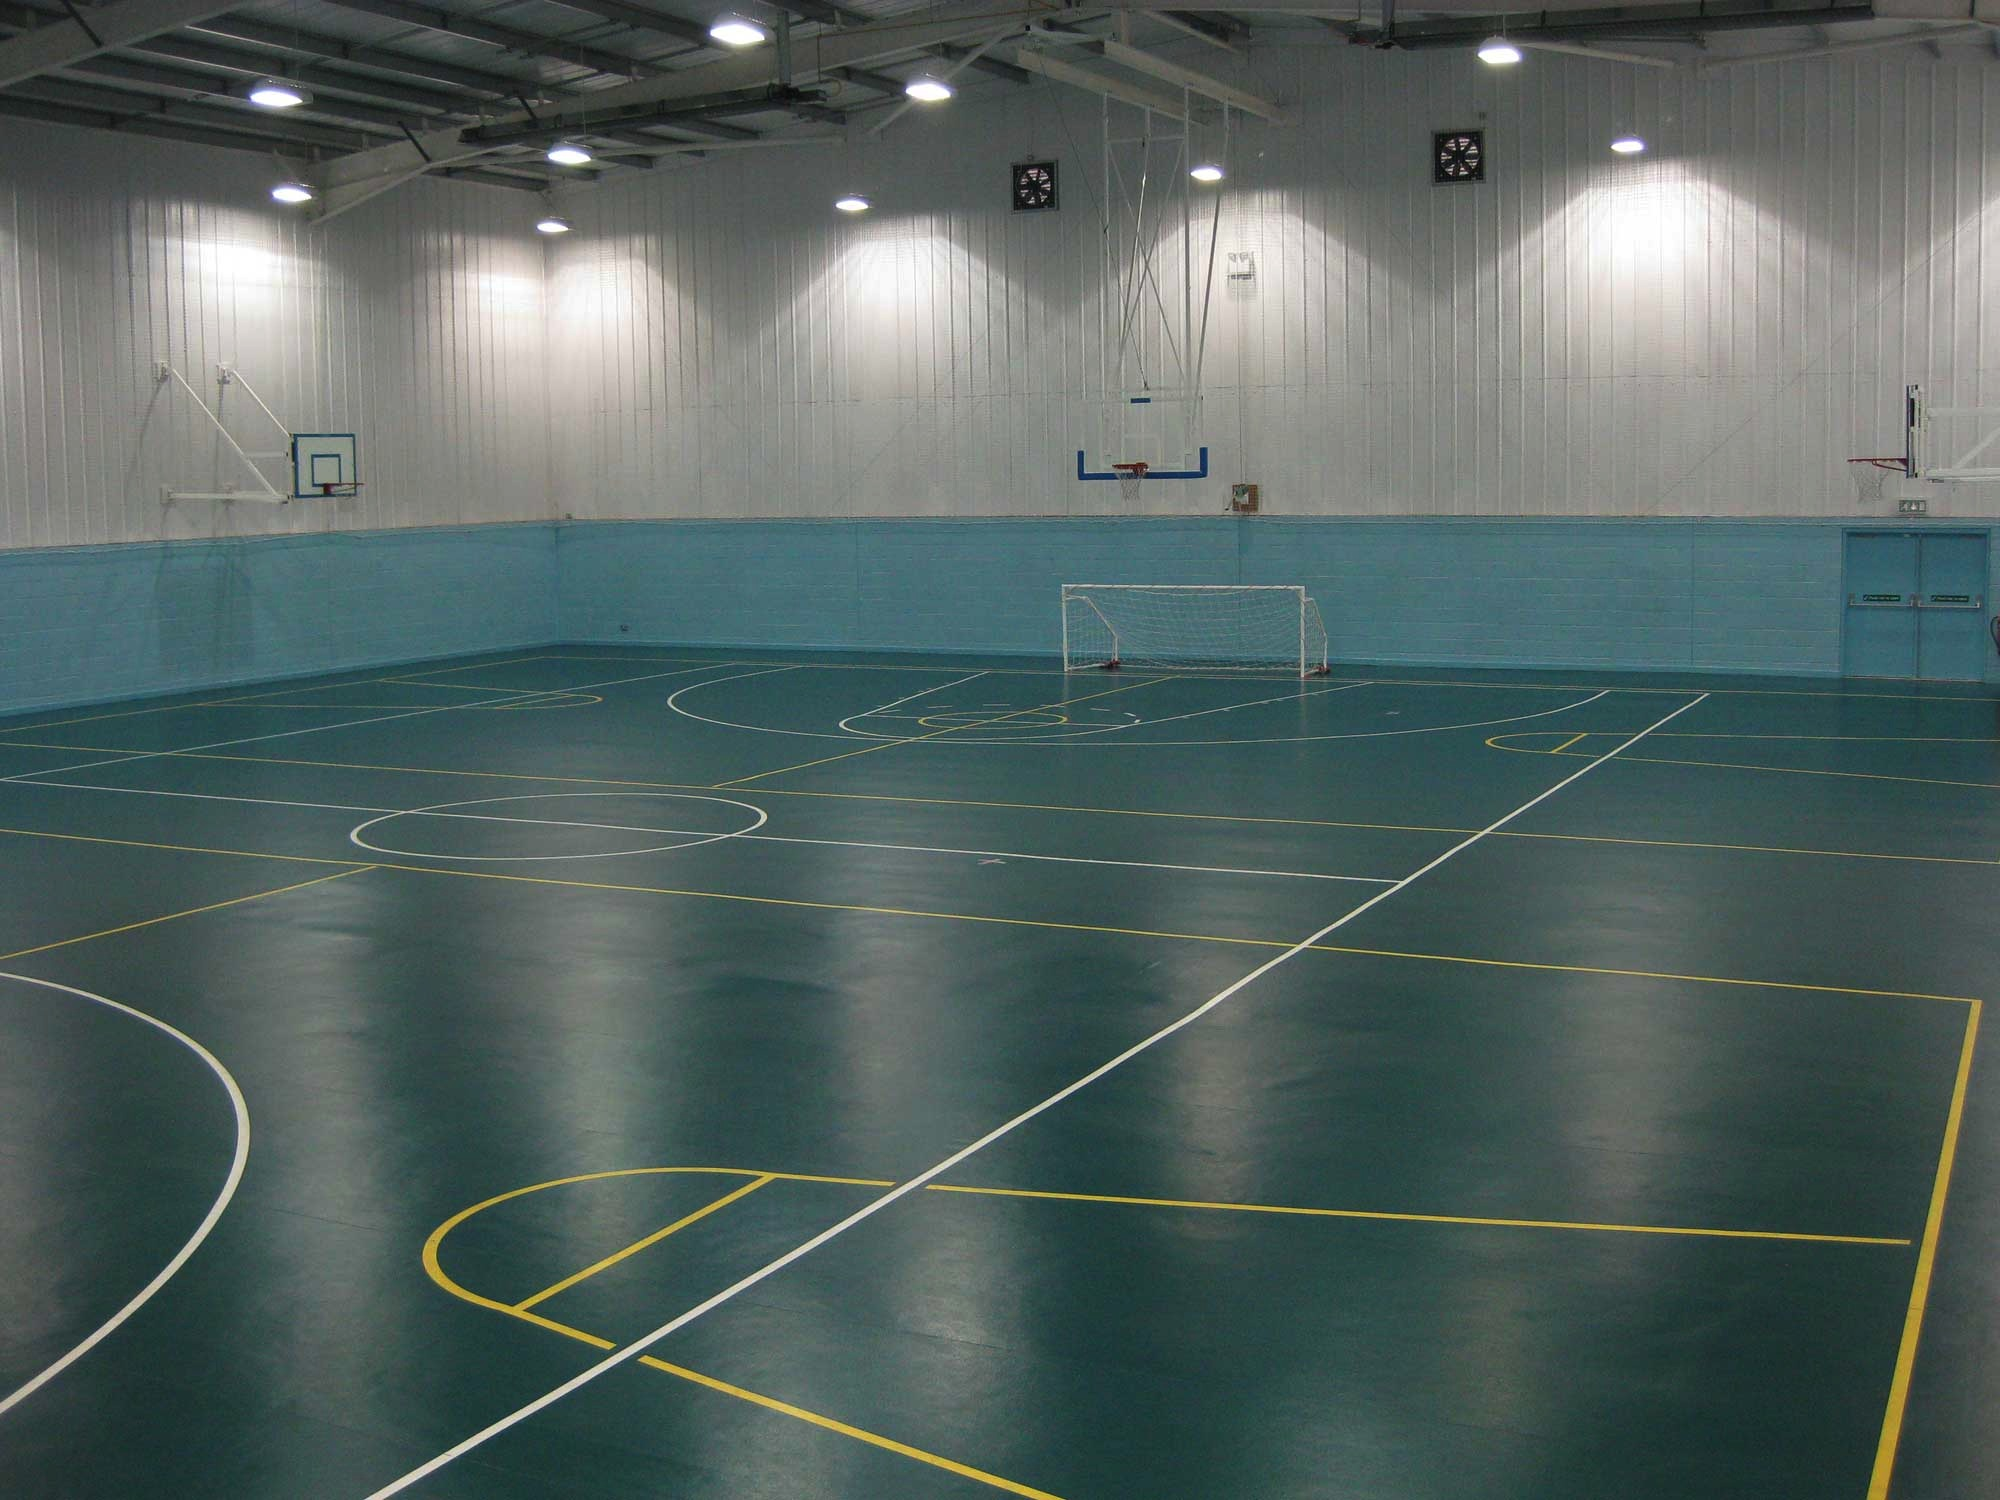 4 badminton court sized sports hall (demo picture)